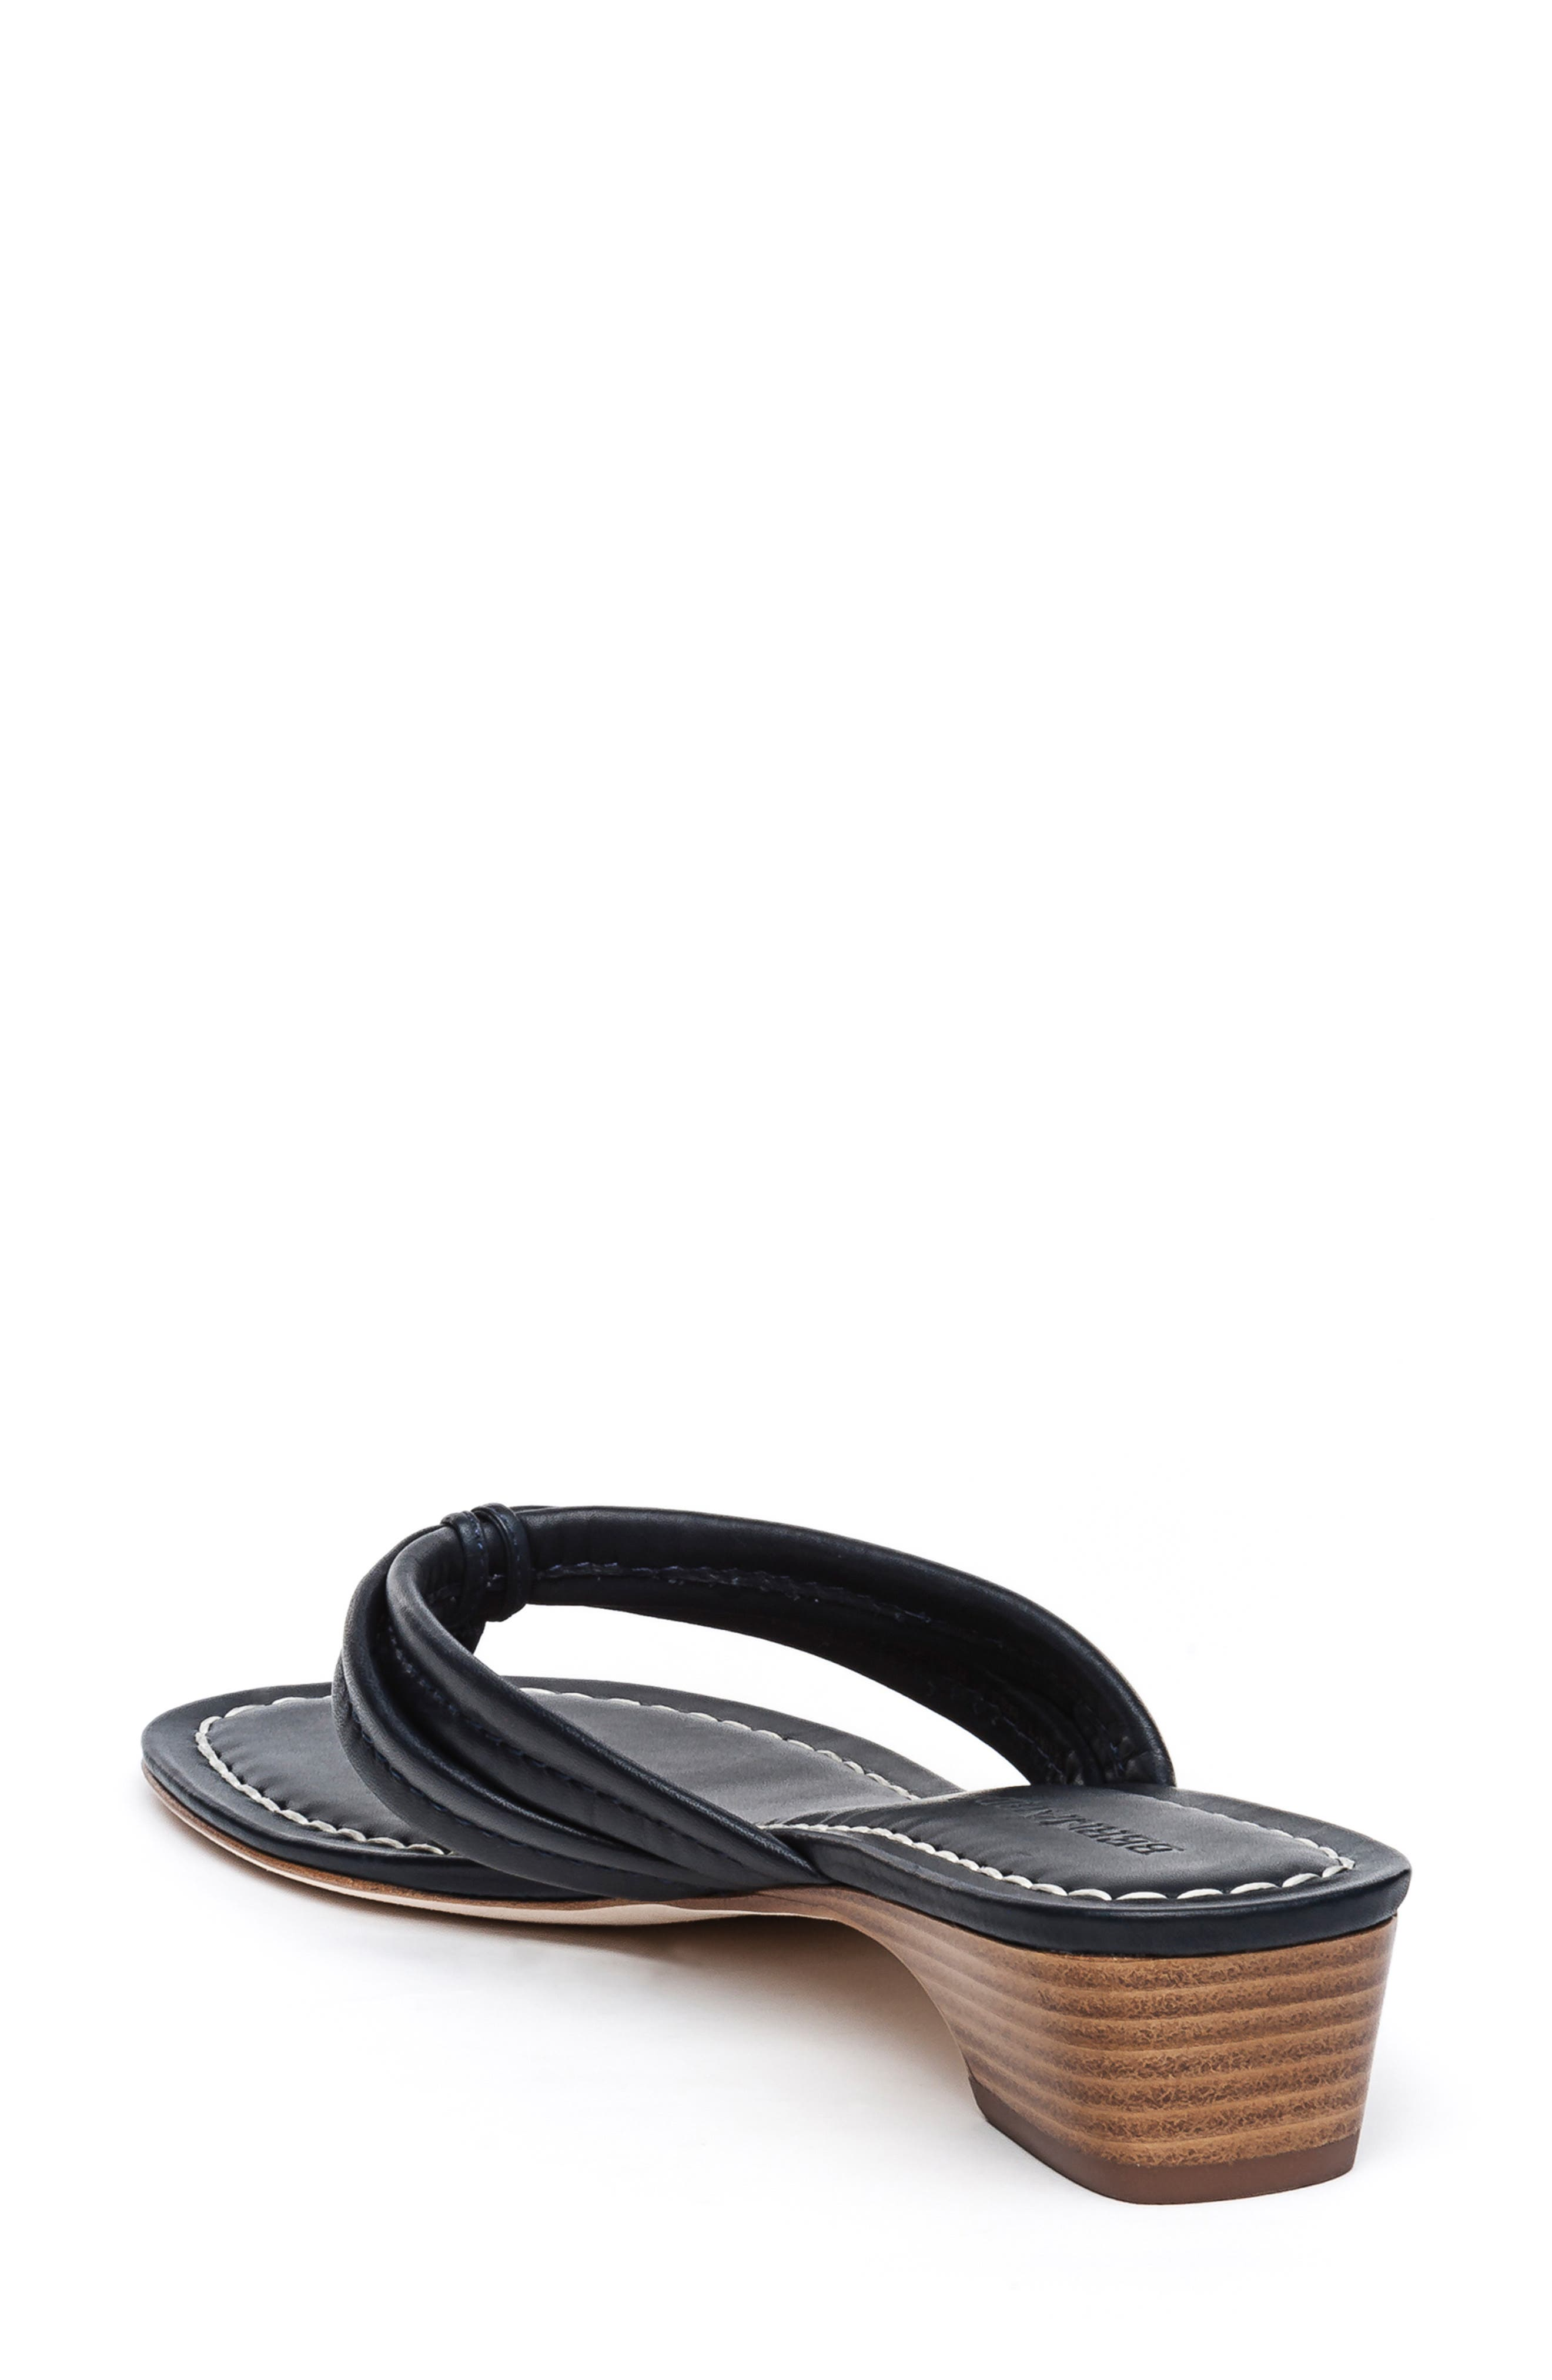 BERNARDO, Miami Sandal, Alternate thumbnail 2, color, BLACK ANTIQUE LEATHER